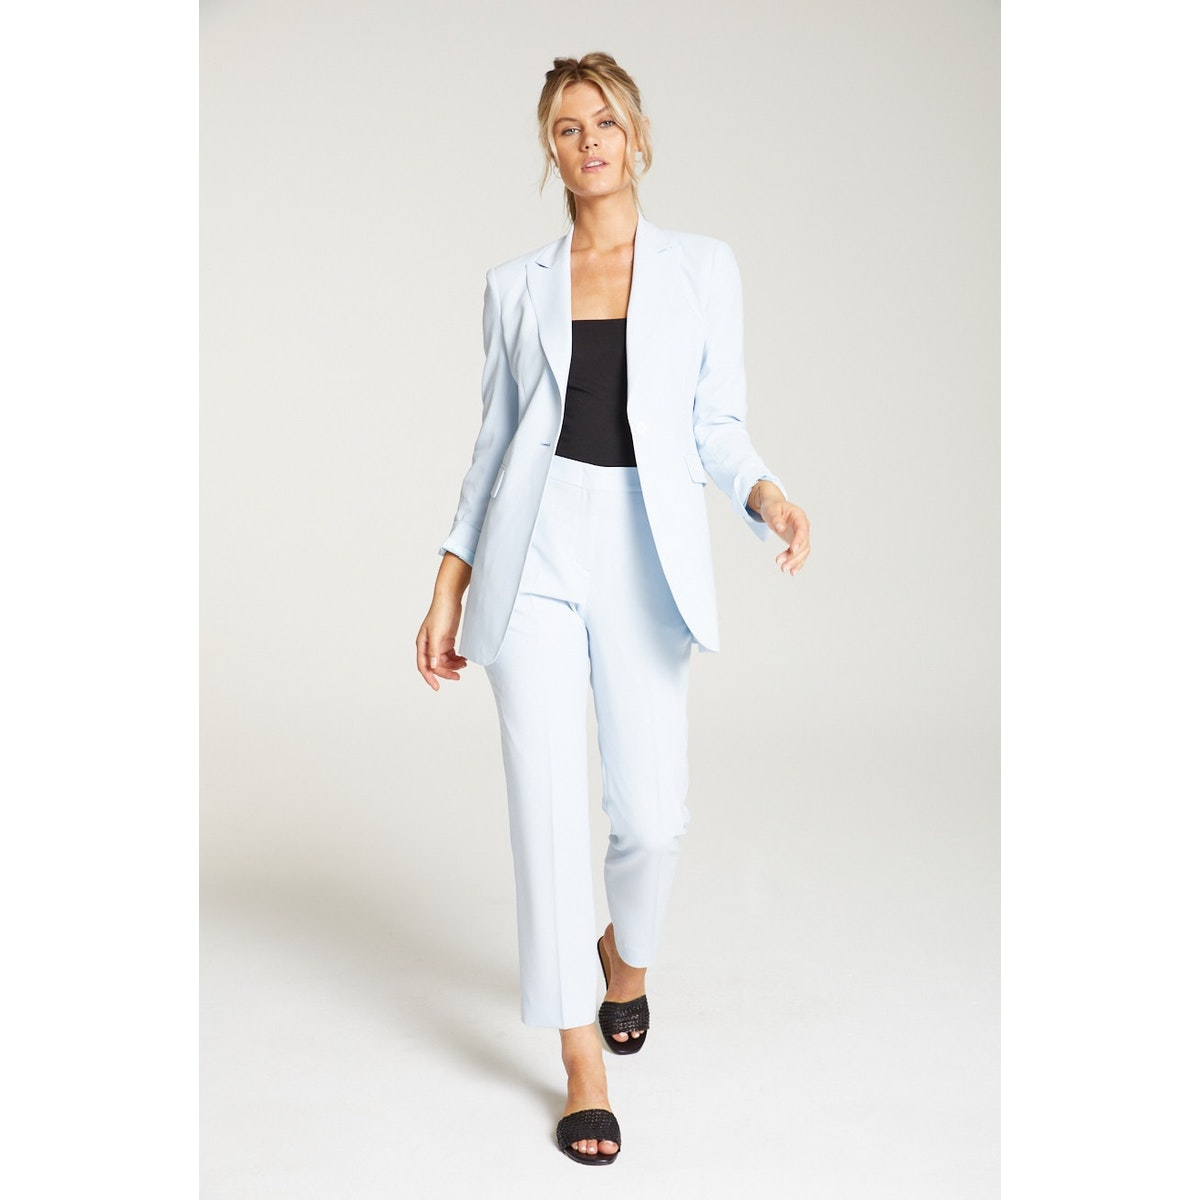 InStitchu Collection The Vanderbeek Pastel Blue Crepe Jacket